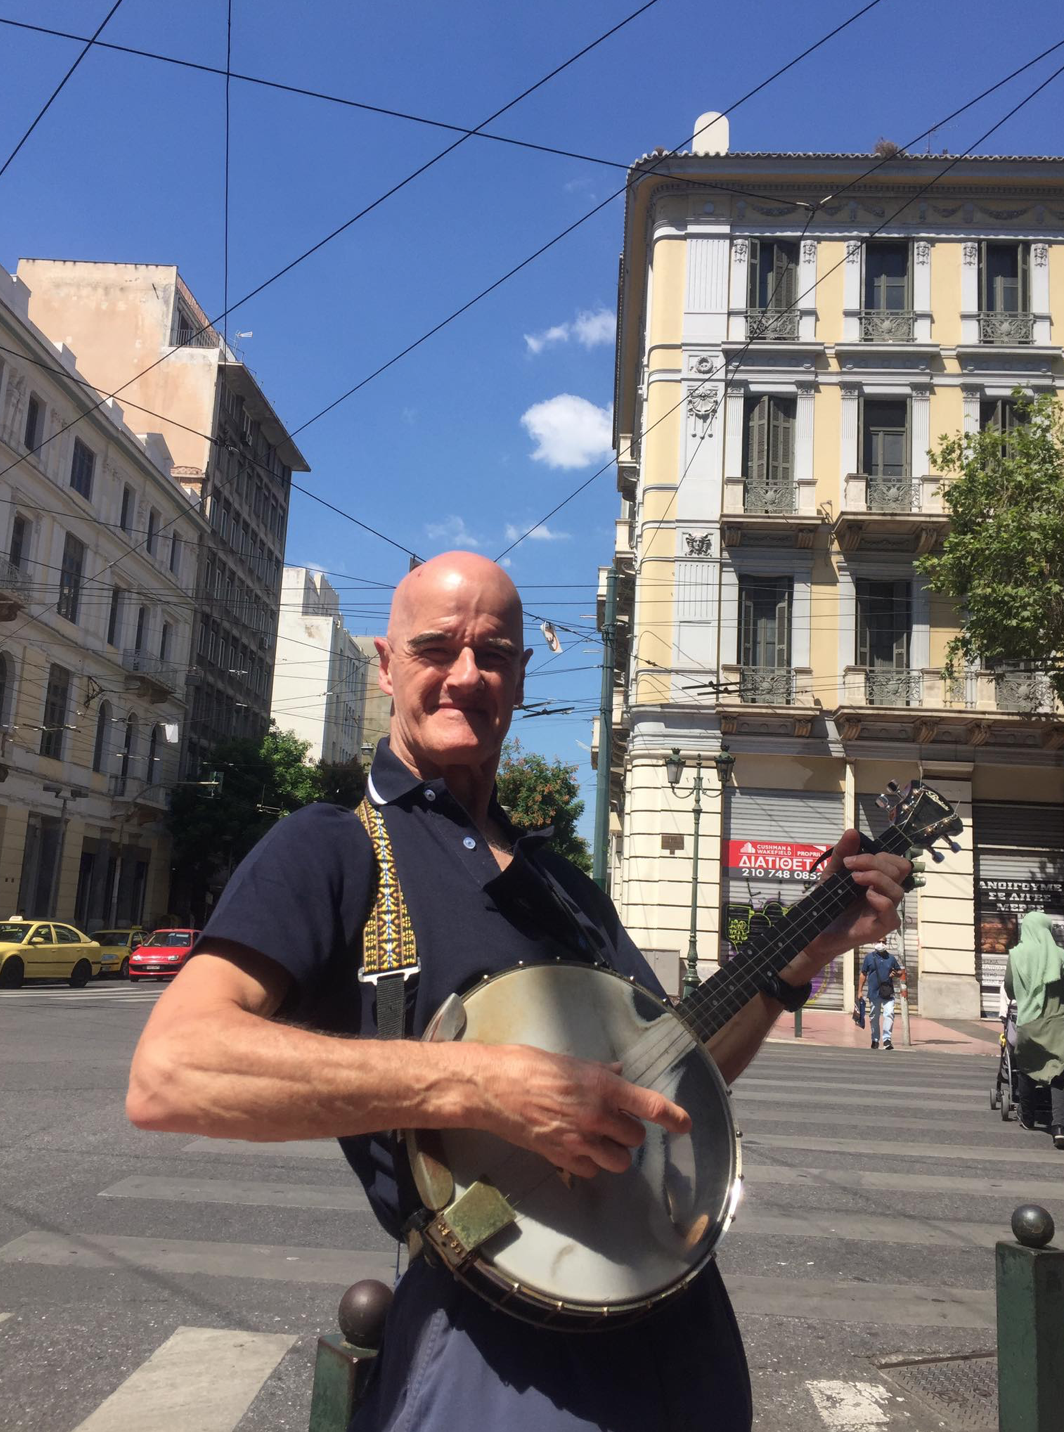 Alan Busking on the Streets of Athens (c) Tom Taylor